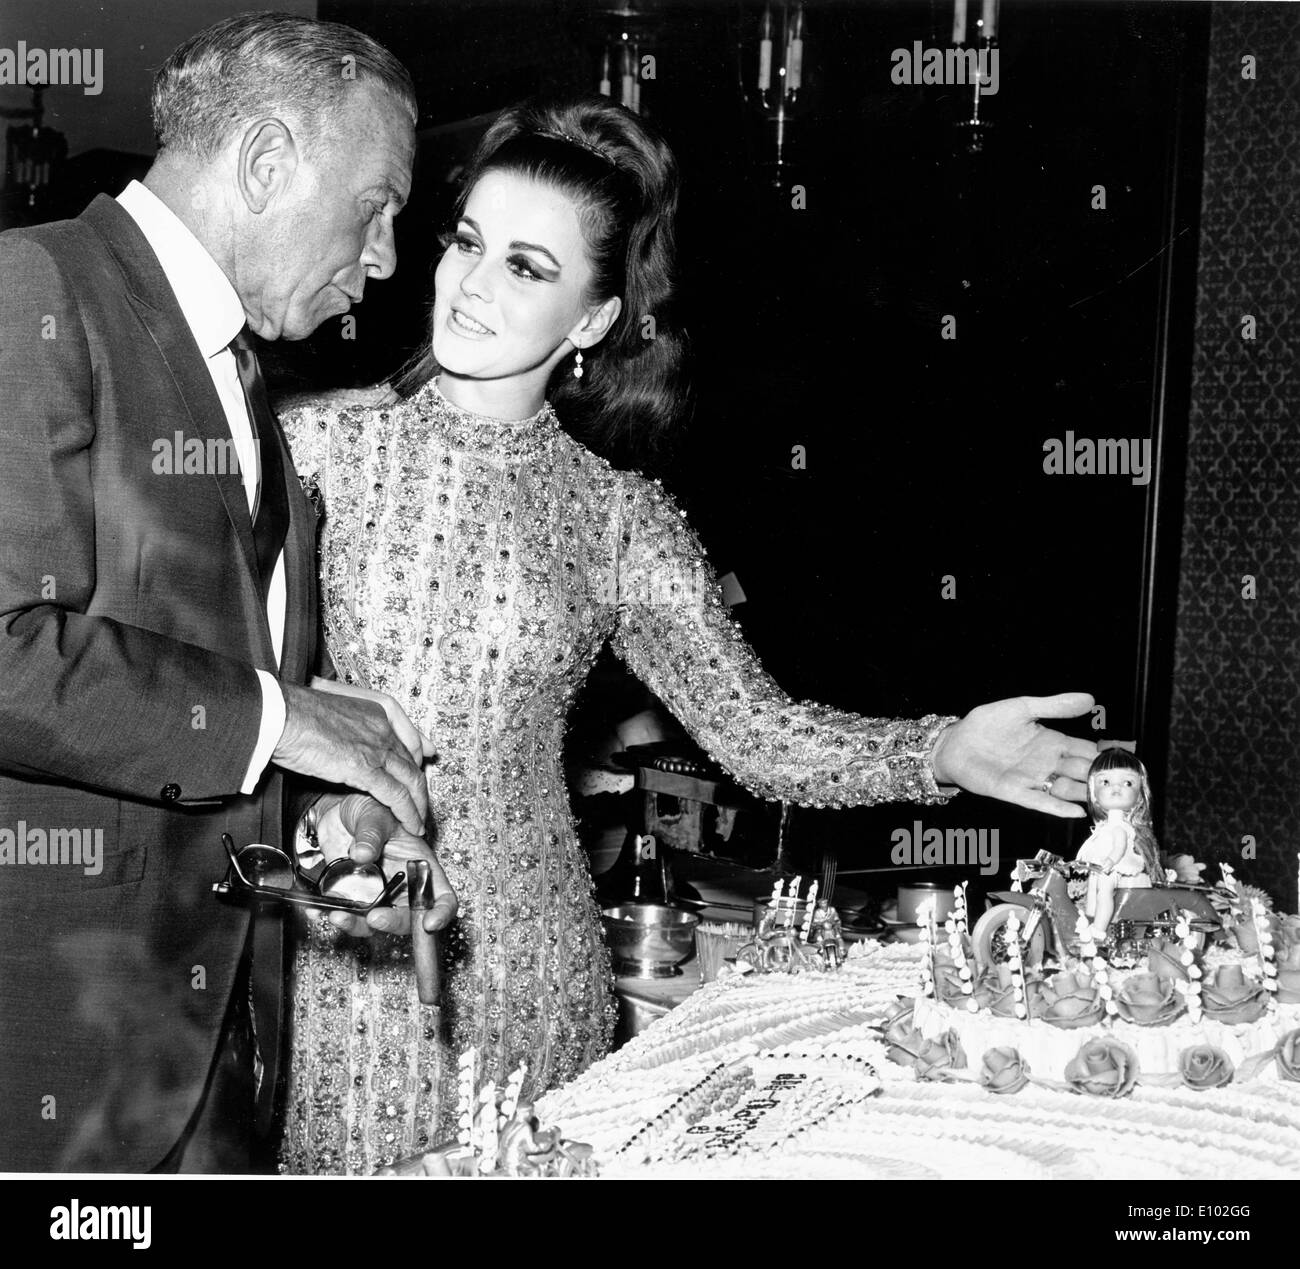 Actress Ann-Margret at party with guest - Stock Image